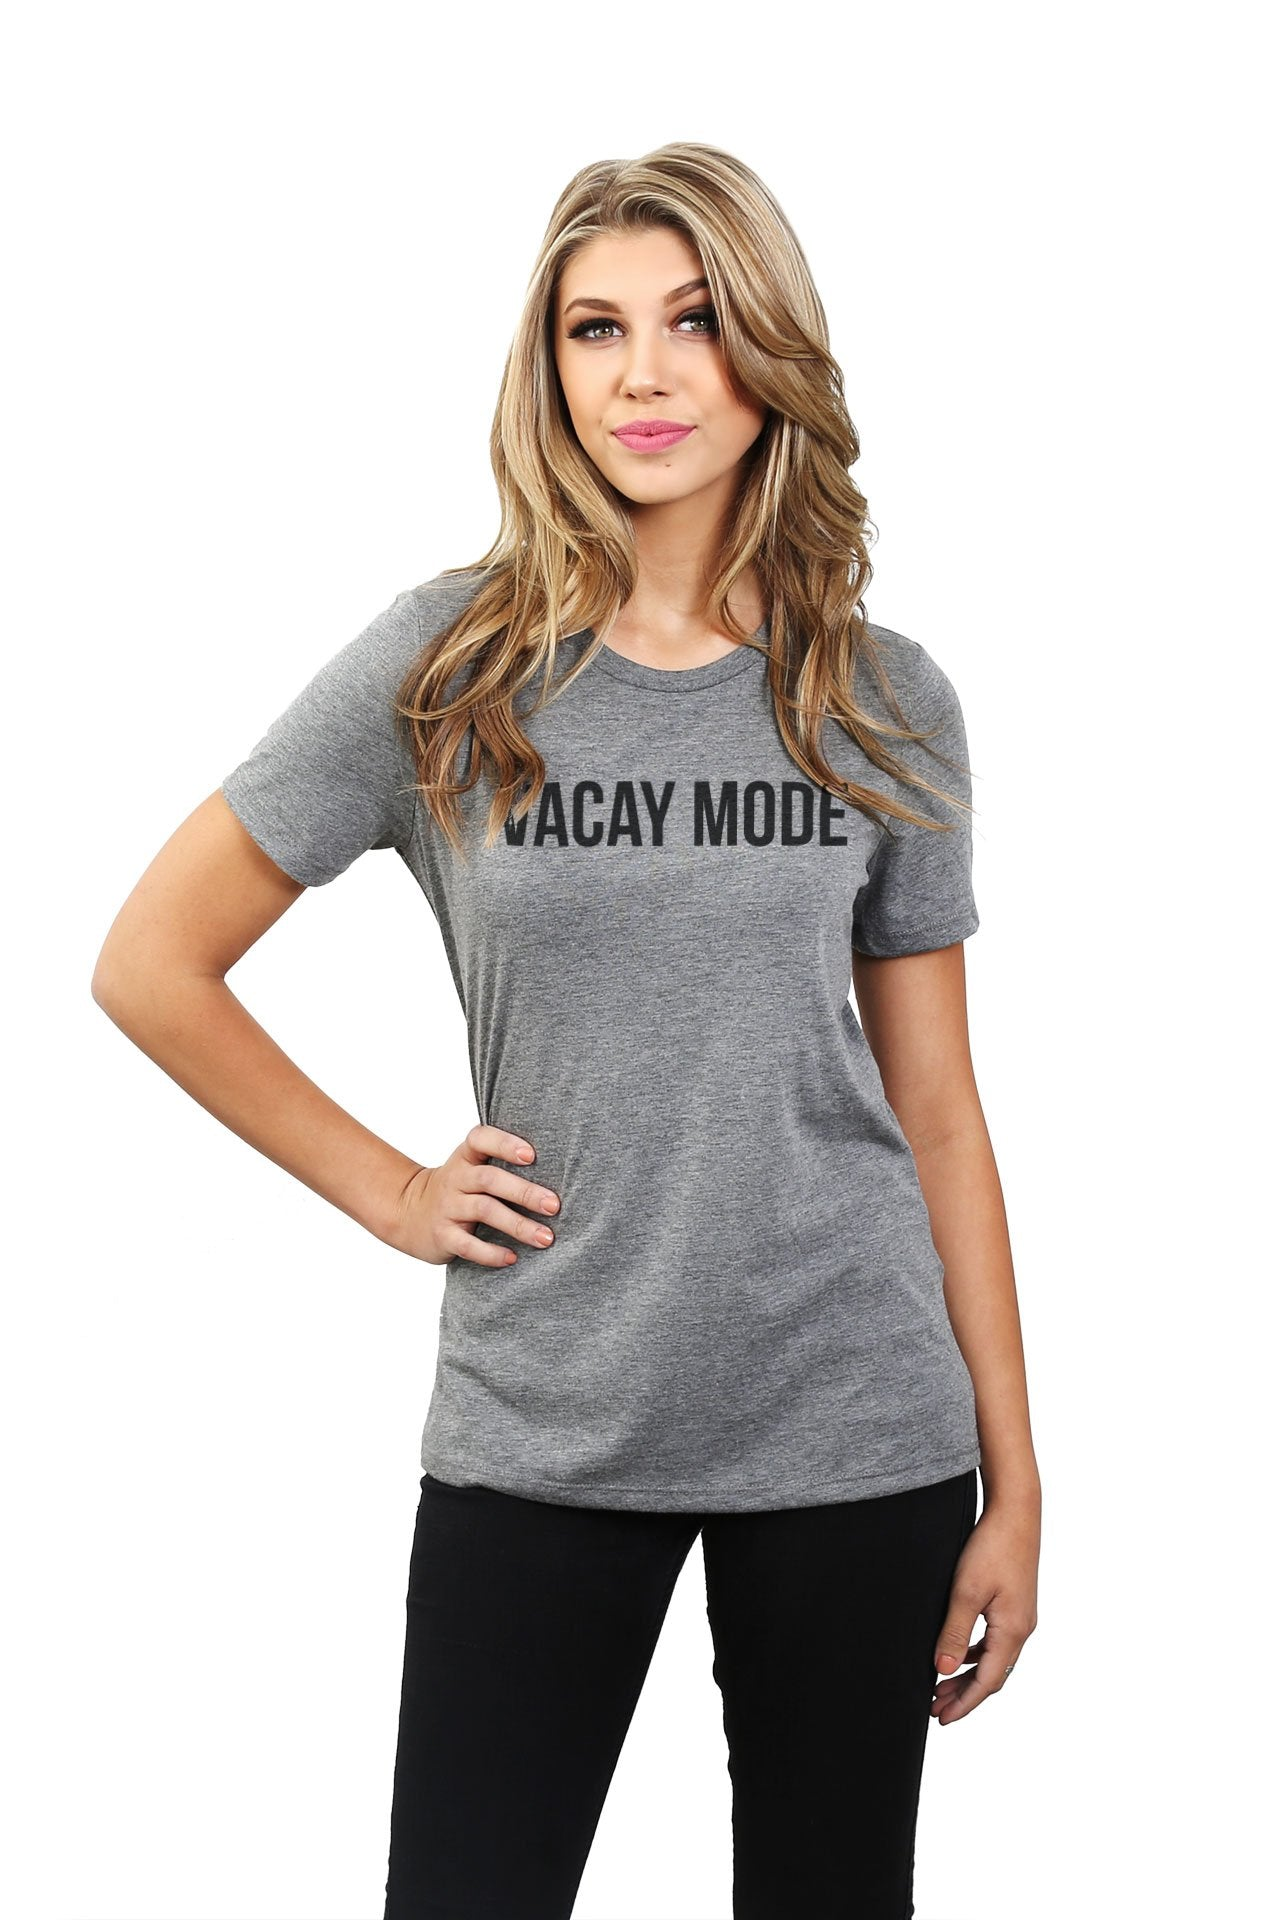 Vacay Mode Women's Relaxed Crewneck T-Shirt Top Tee Heather Grey